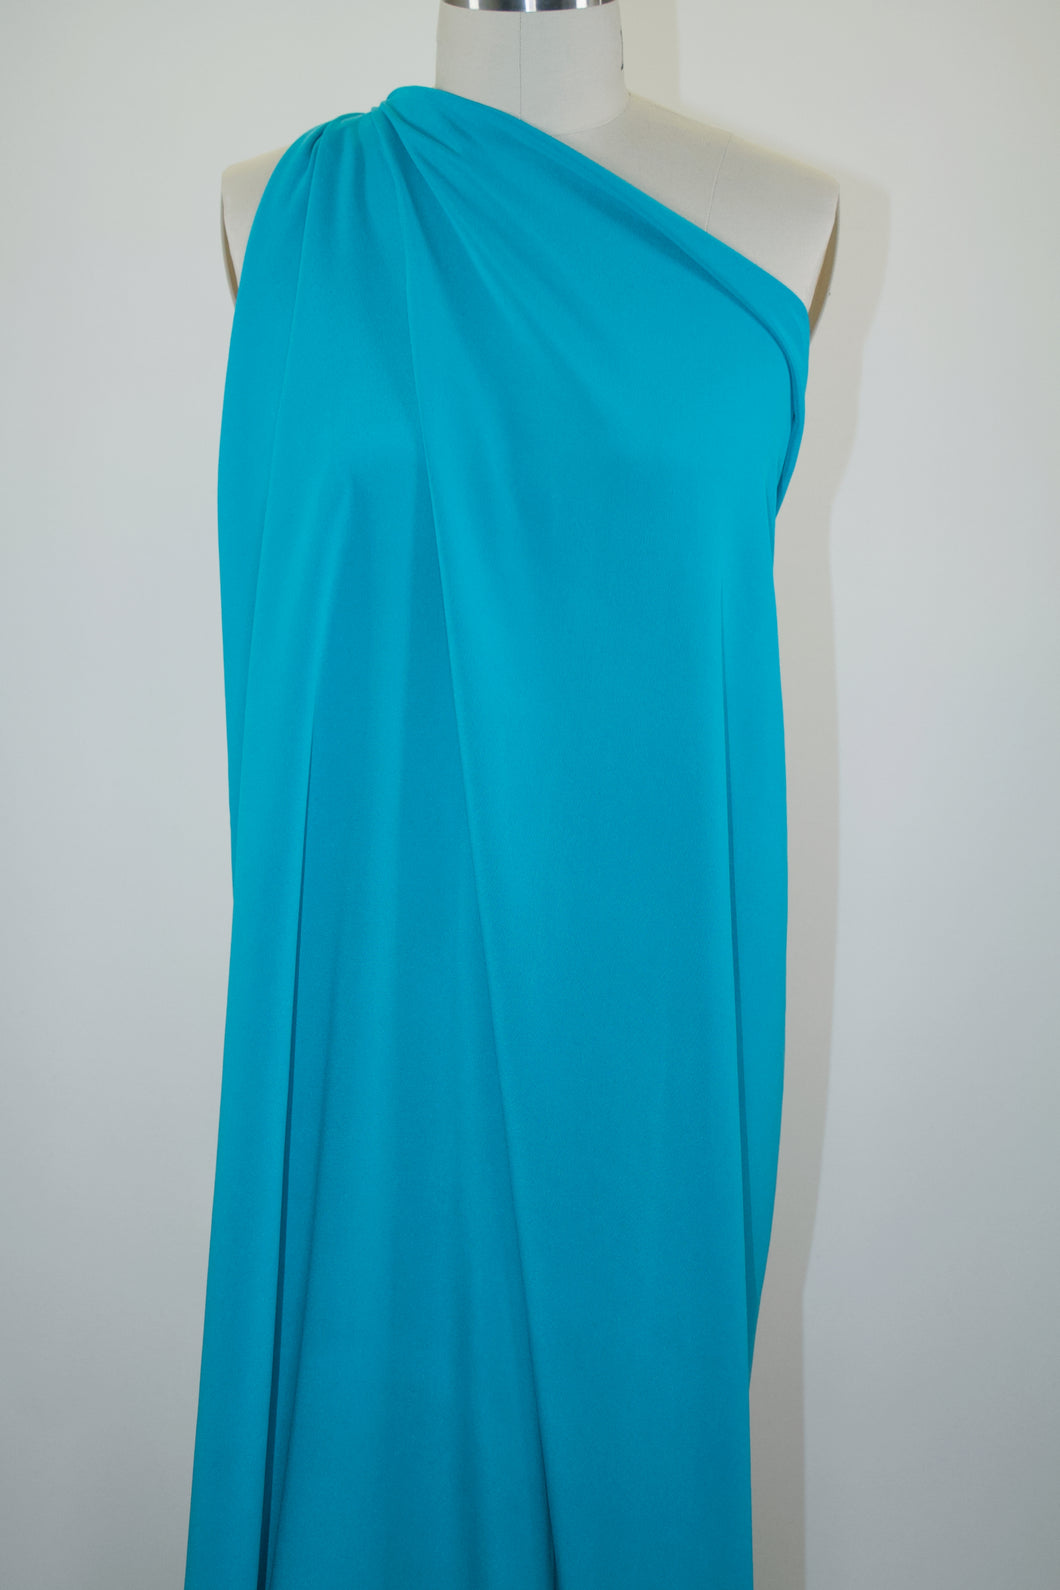 Bets3y J0hnson Stretch Silk Crepe - Bluebird